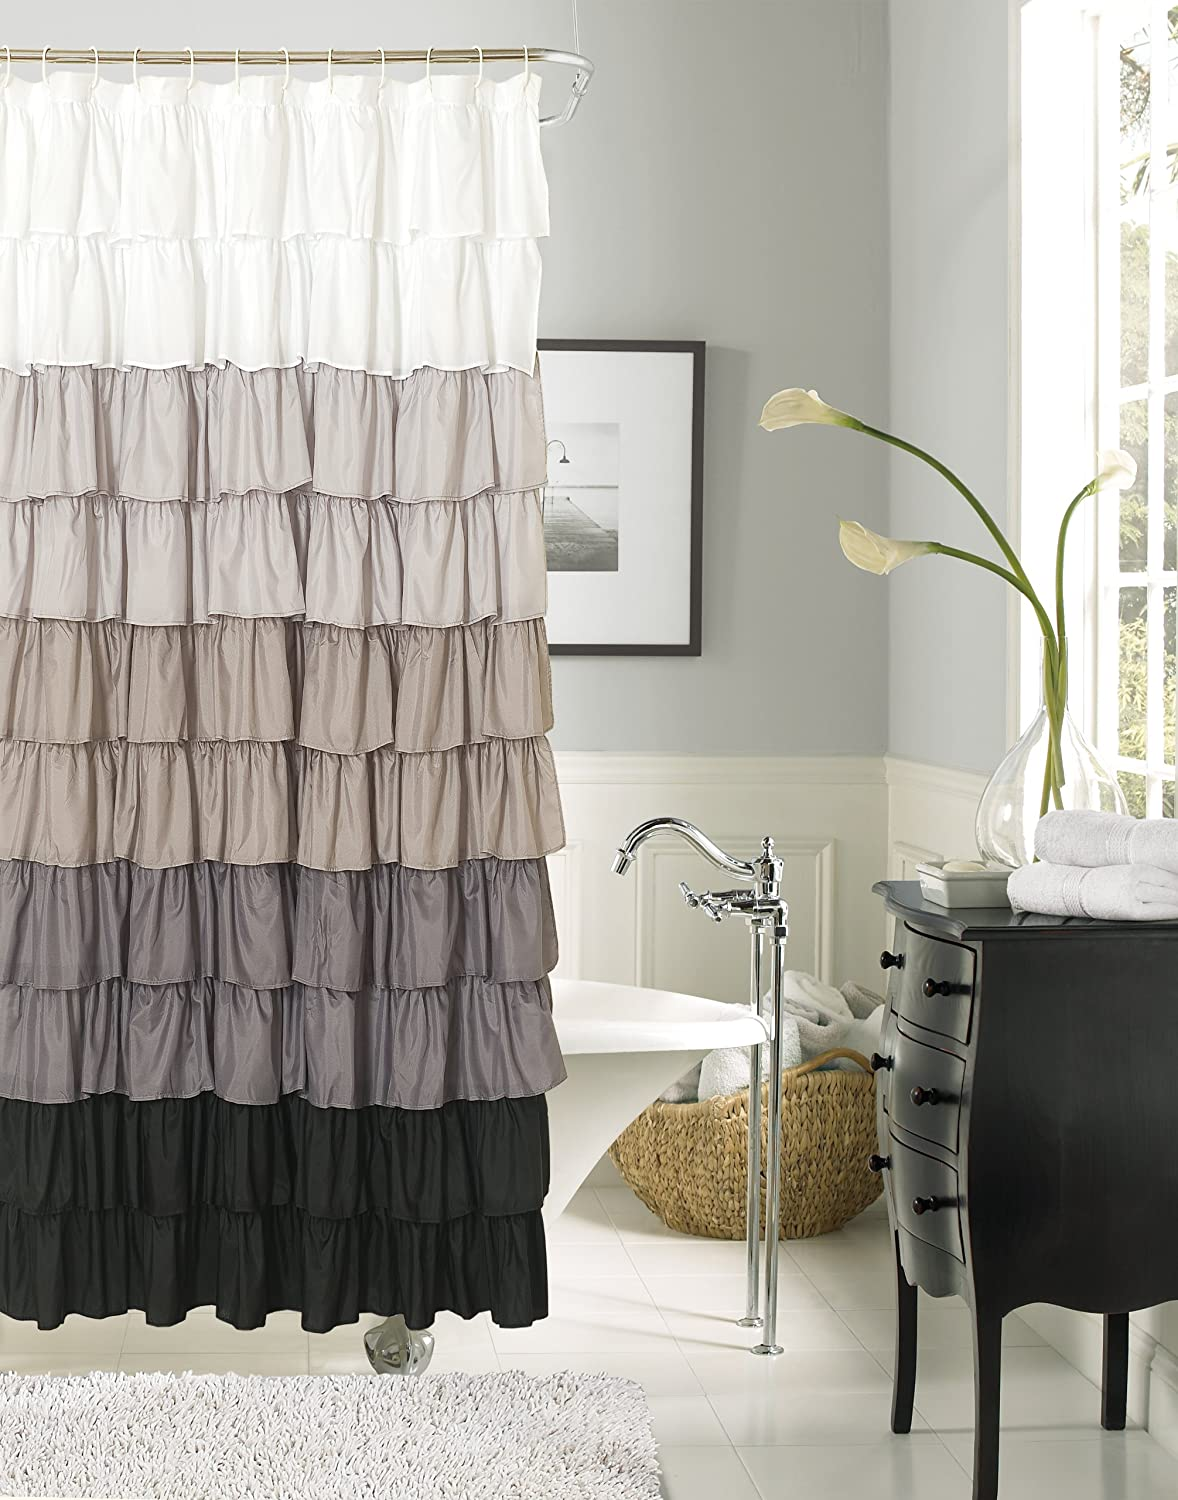 Amazon Dainty Home Flamenco Ruffled Shower Curtain 72 By Inch Black White Kitchen